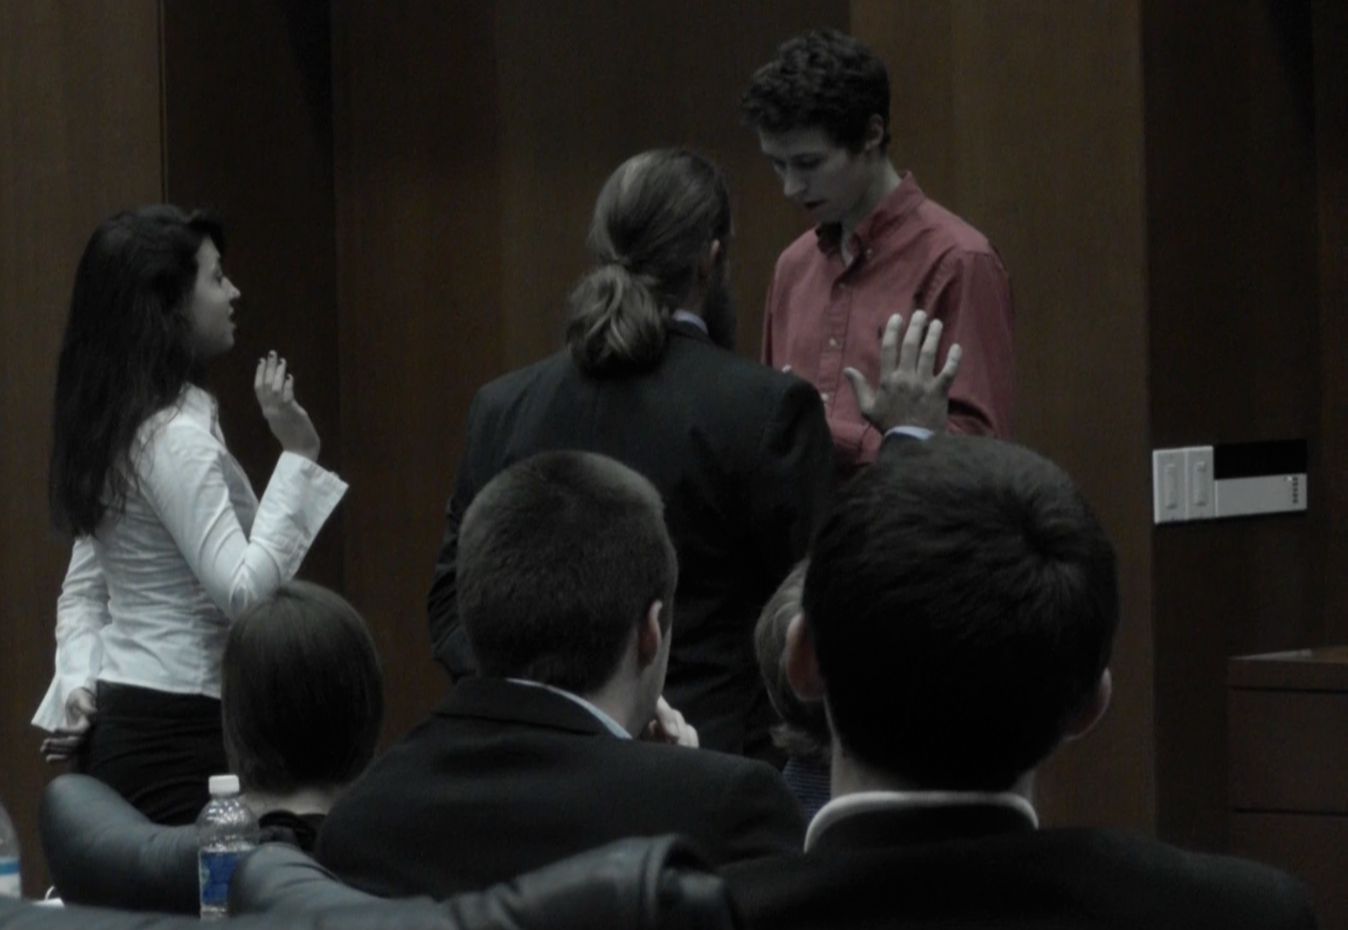 New senators sworn in.